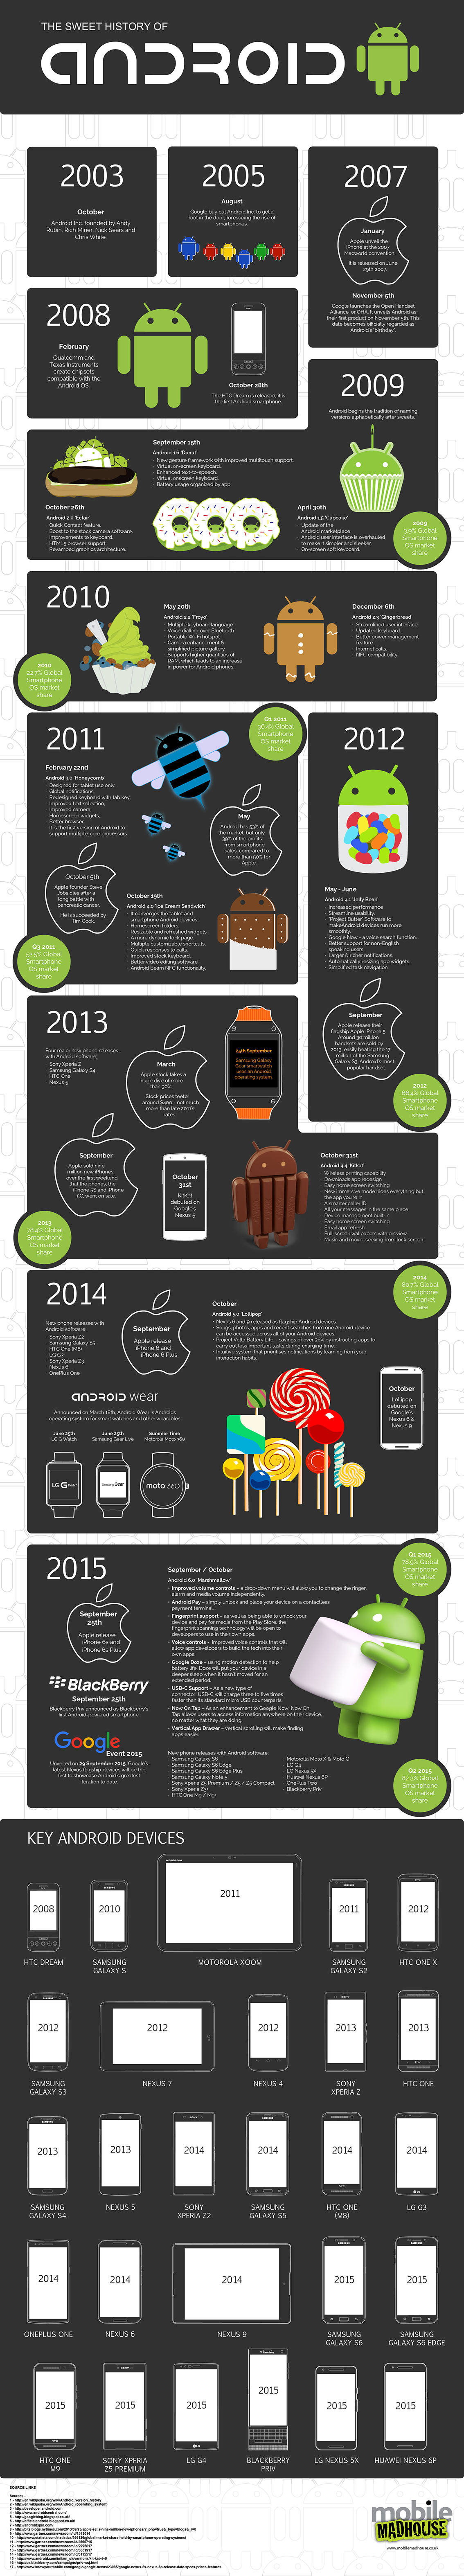 History of Android OS - From Cupcake to Marshmallow Infographic